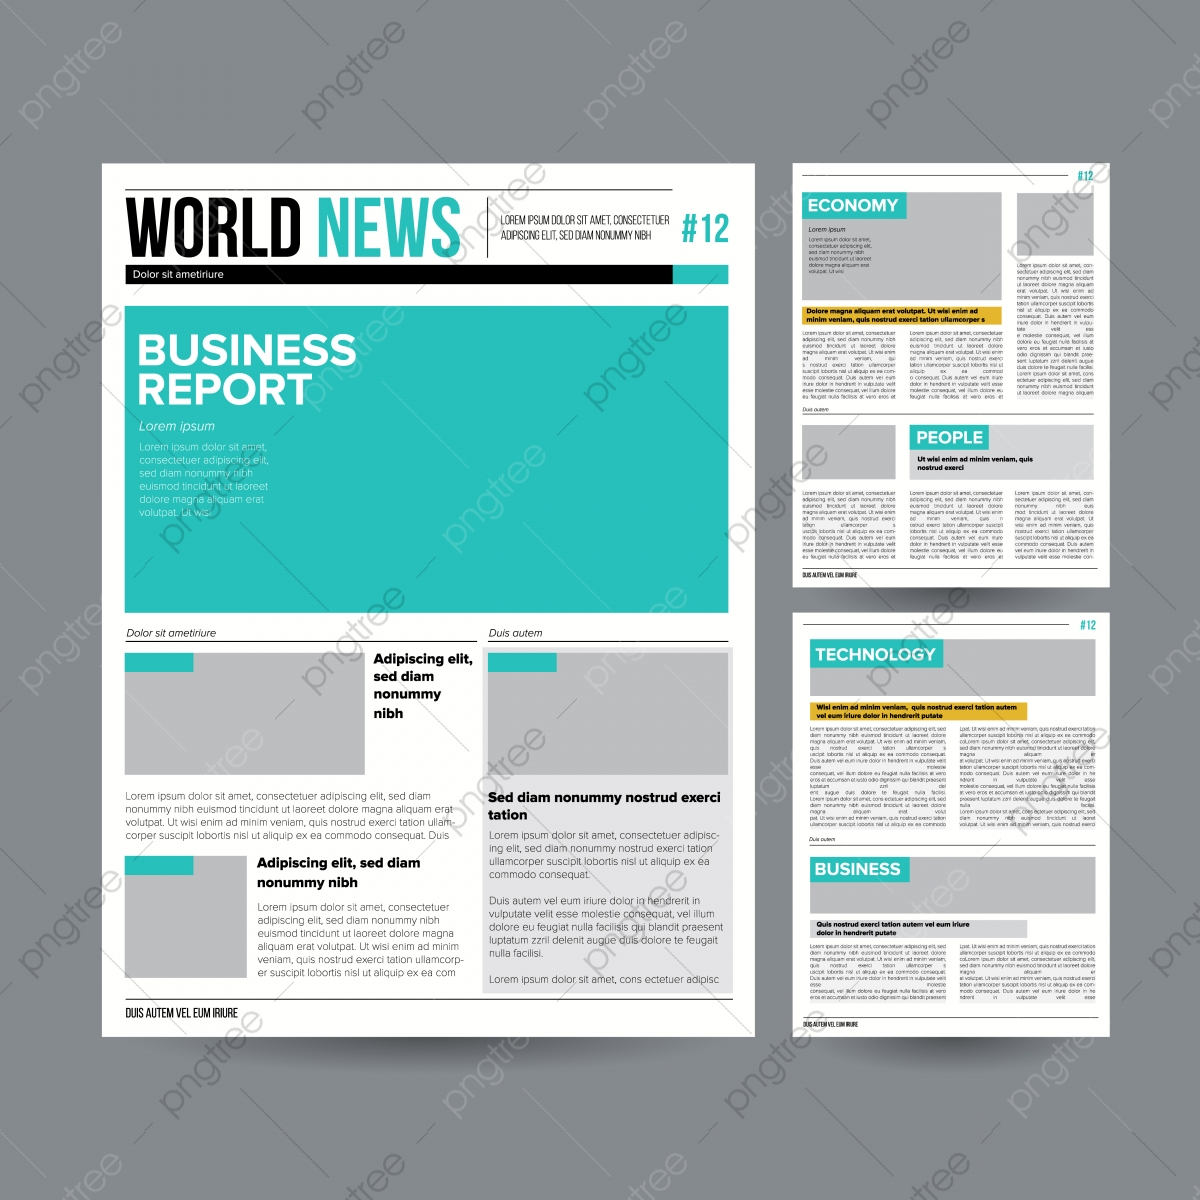 Newspaper Design Template Vector Modern Newspaper Layout Template Financial Articles Business Information World News Economy Headlines Blank Spaces For Images Isolated Illustration Template News Paper Png And Vector With Transparent Background For